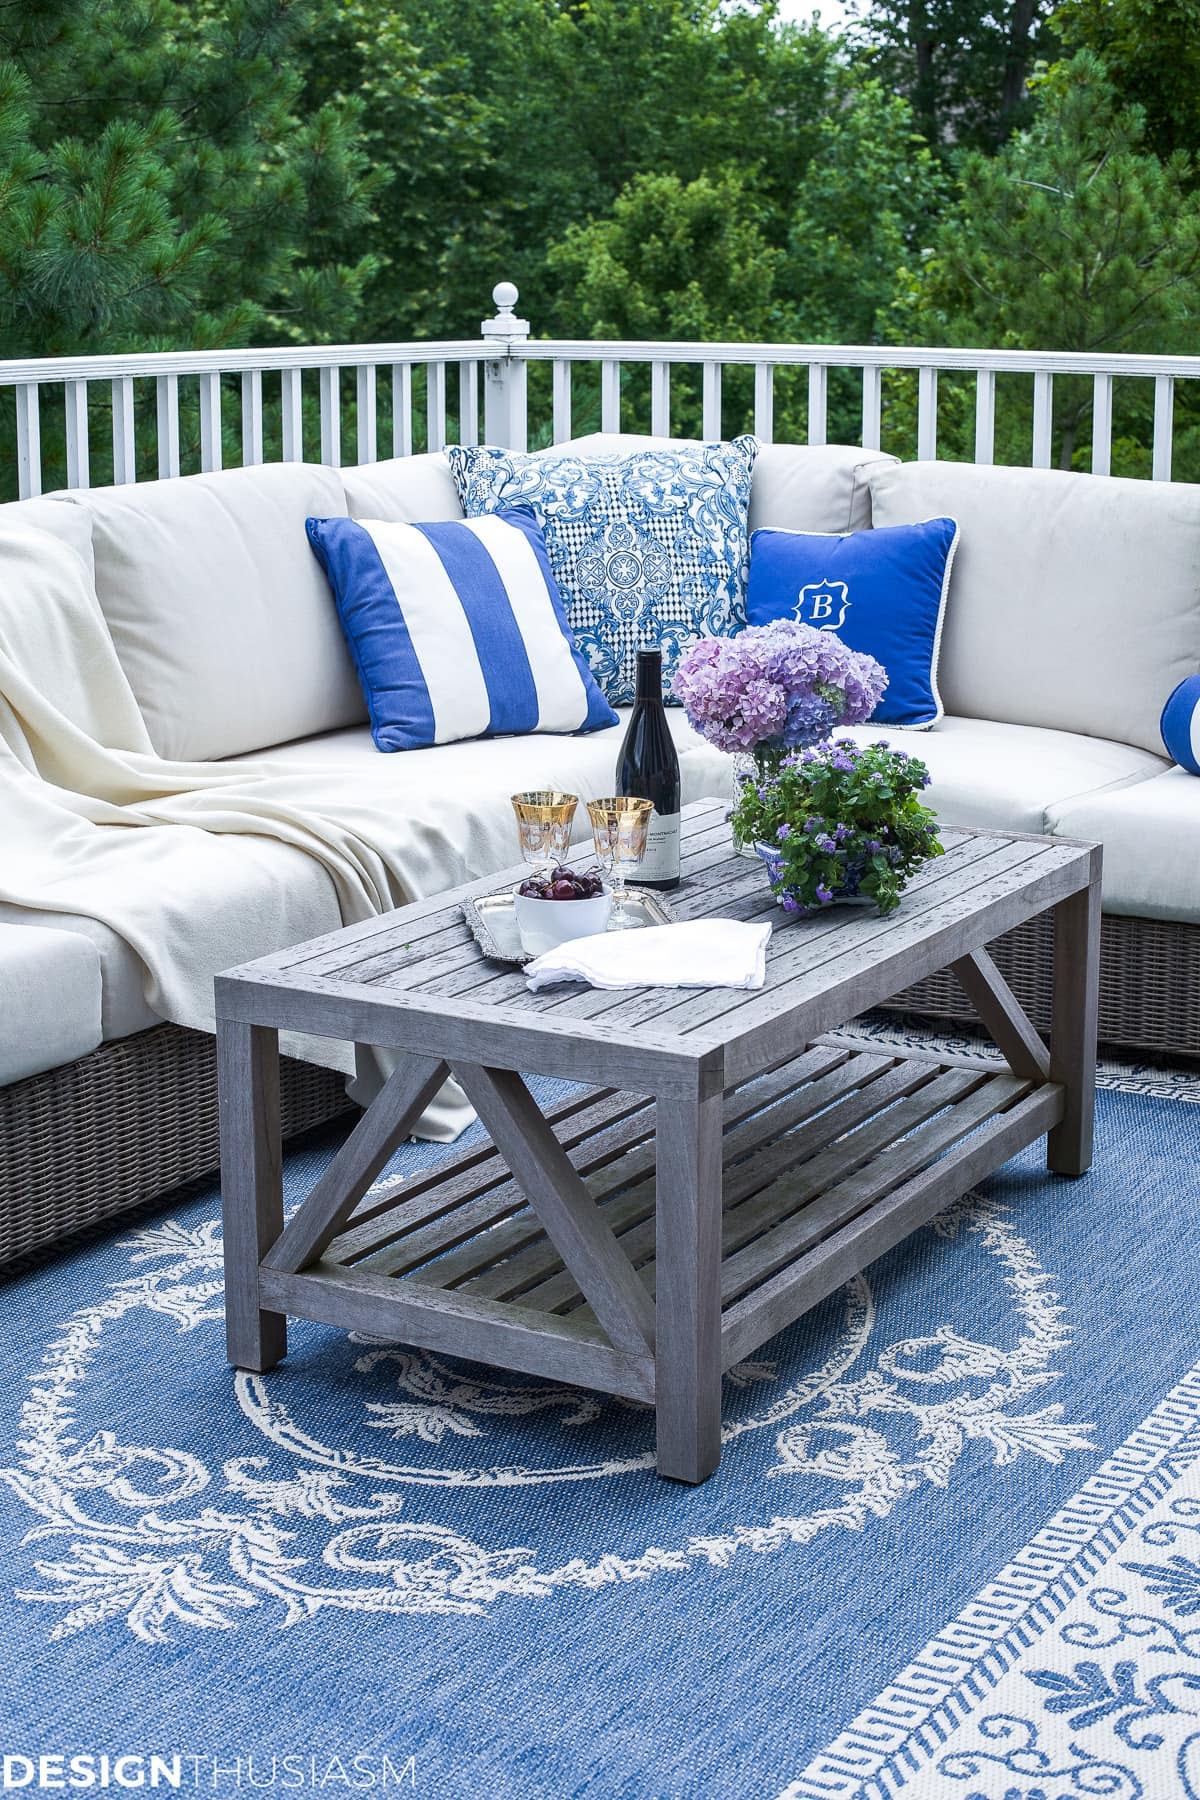 Outdoor Lounge | How One Piece Can Pull Your Patio Decor Together - designthusiasm.com